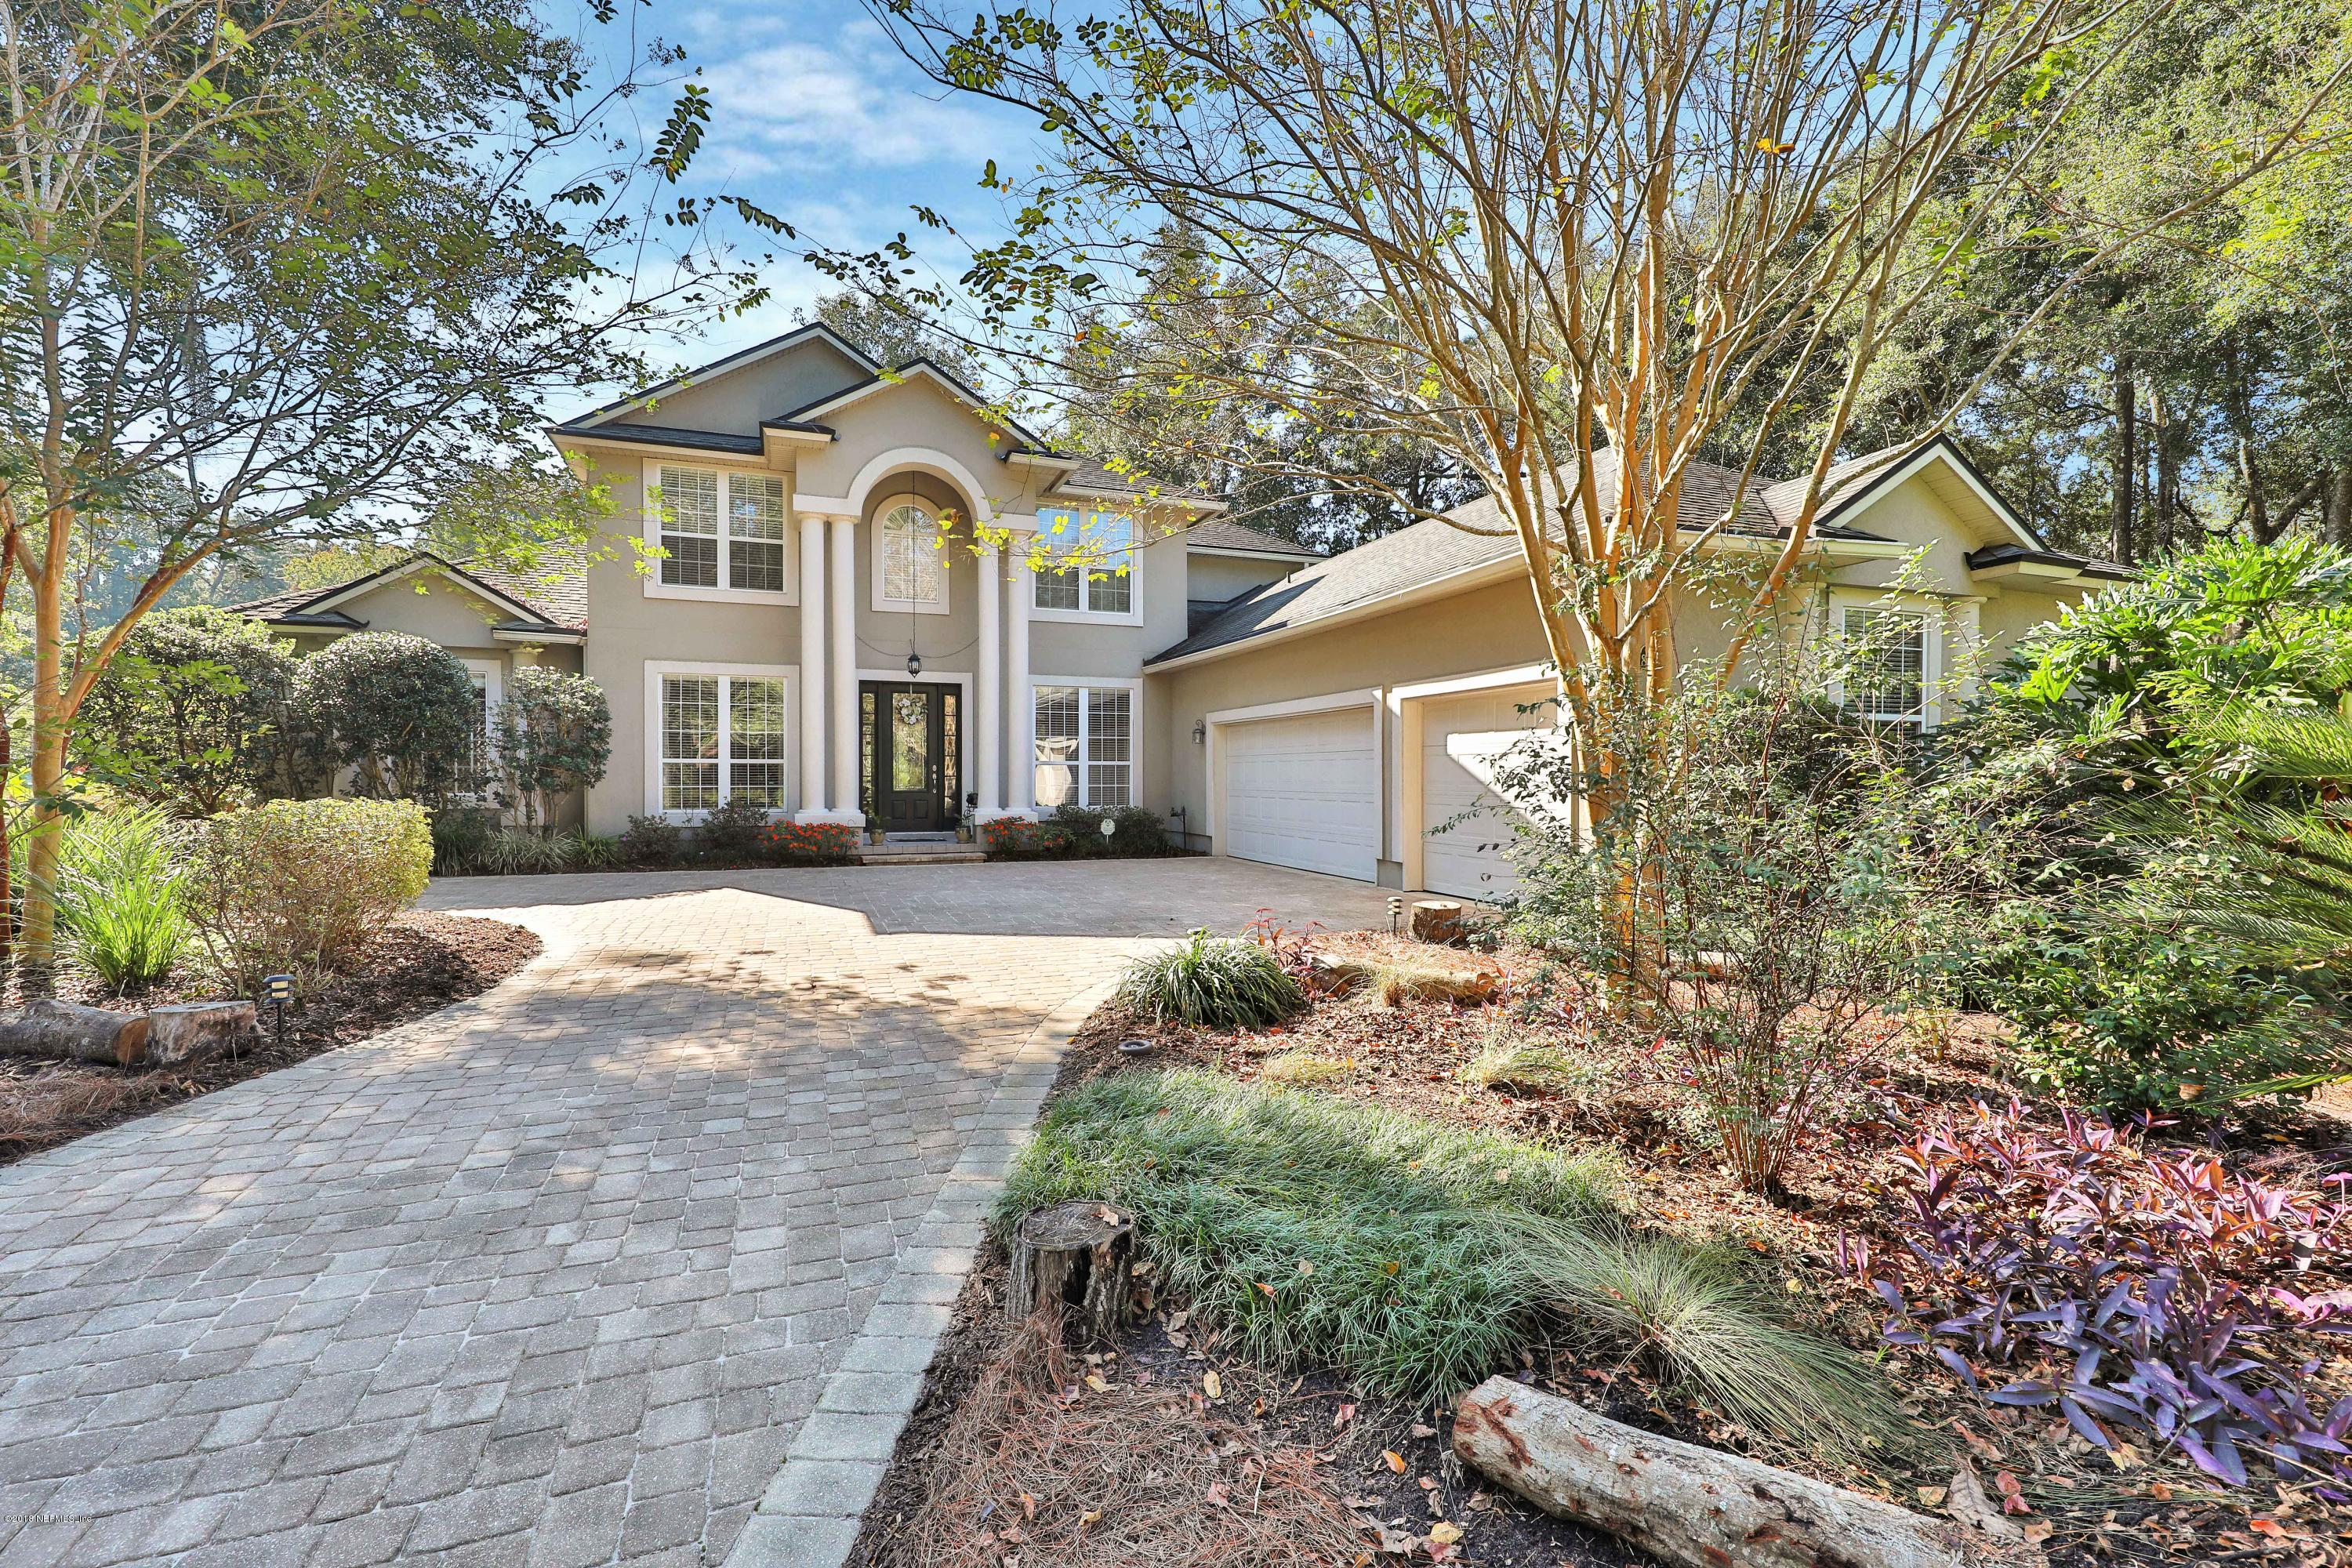 1853 COLONIAL, GREEN COVE SPRINGS, FLORIDA 32043, 5 Bedrooms Bedrooms, ,4 BathroomsBathrooms,Residential - single family,For sale,COLONIAL,968253